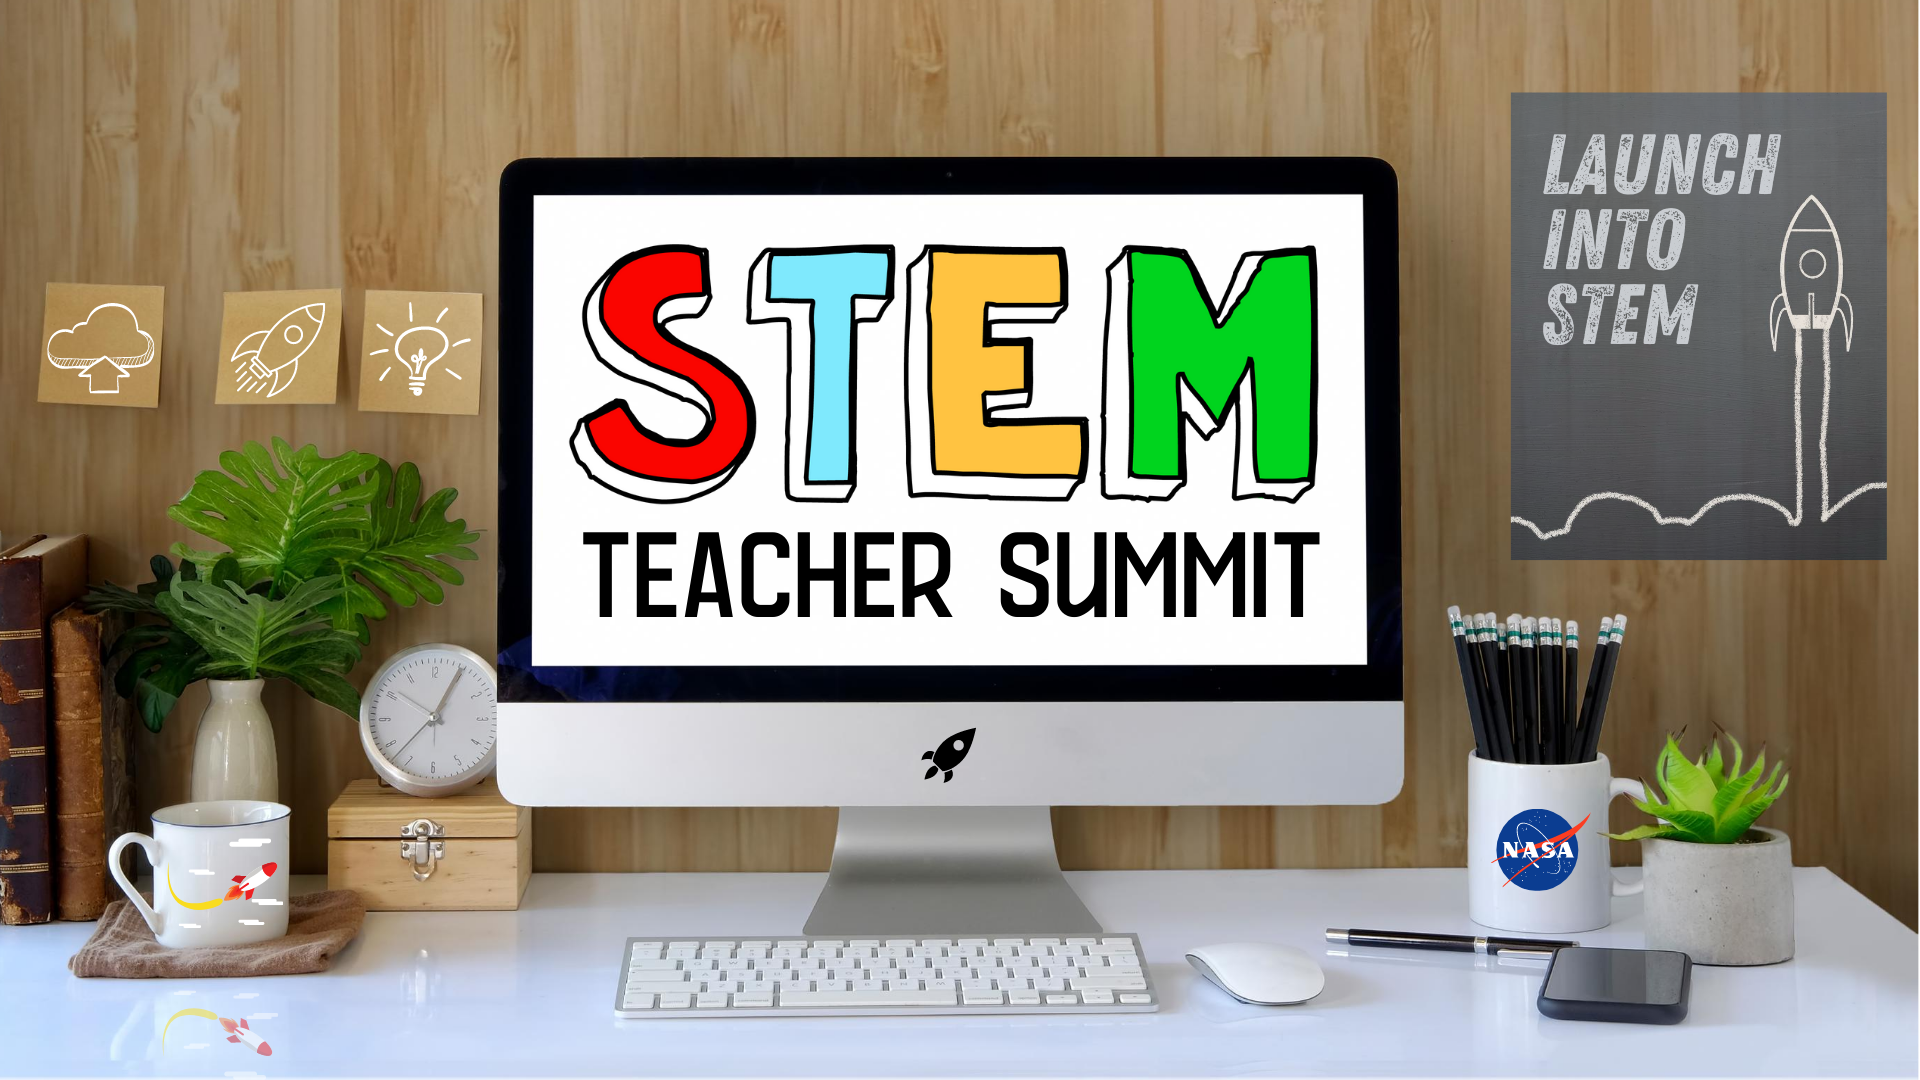 Elementary STEM Teacher Summit 2021 Launch into STEM